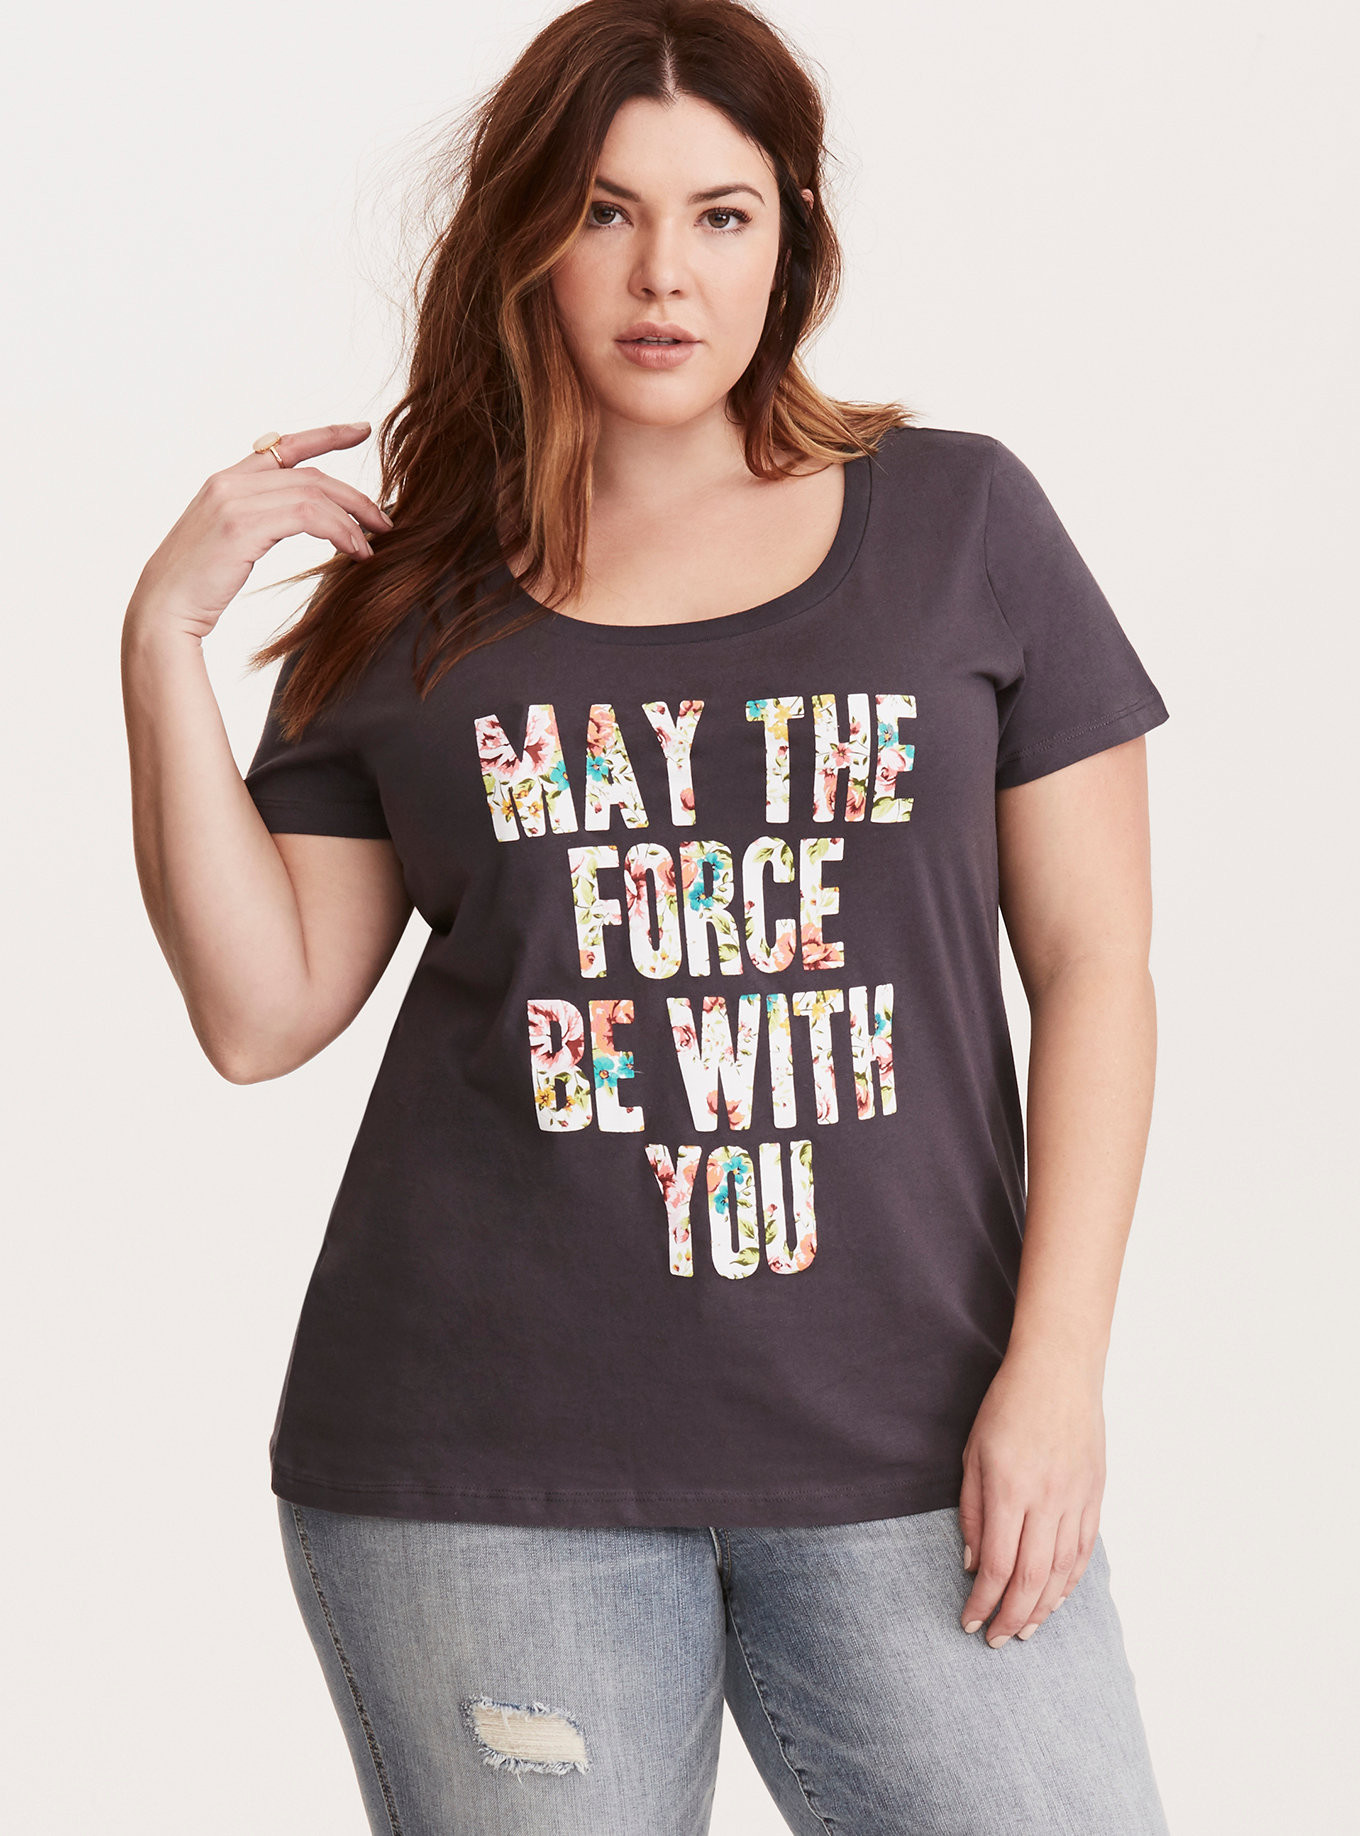 New women's Star Wars plus size tees at Torrid - The Kessel Runway